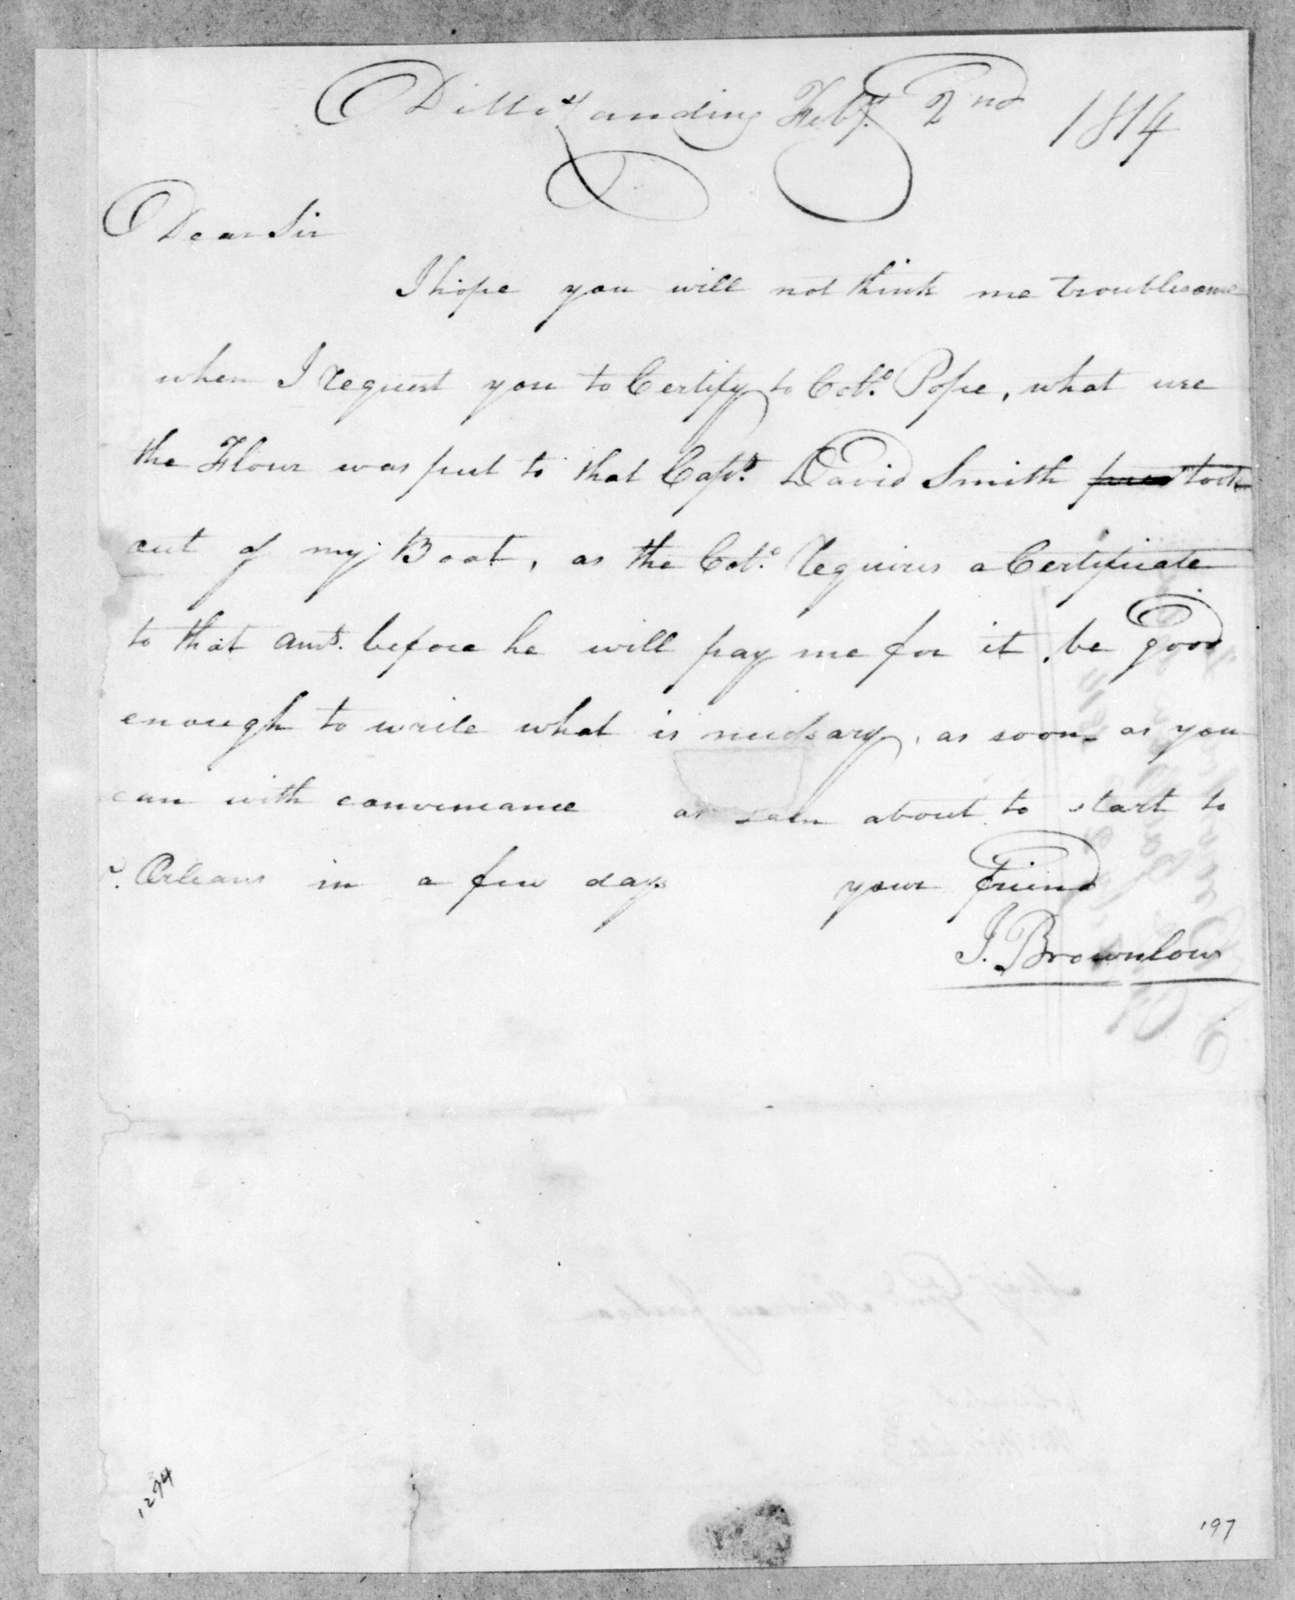 Isaac Brownlow to Andrew Jackson, February 2, 1814